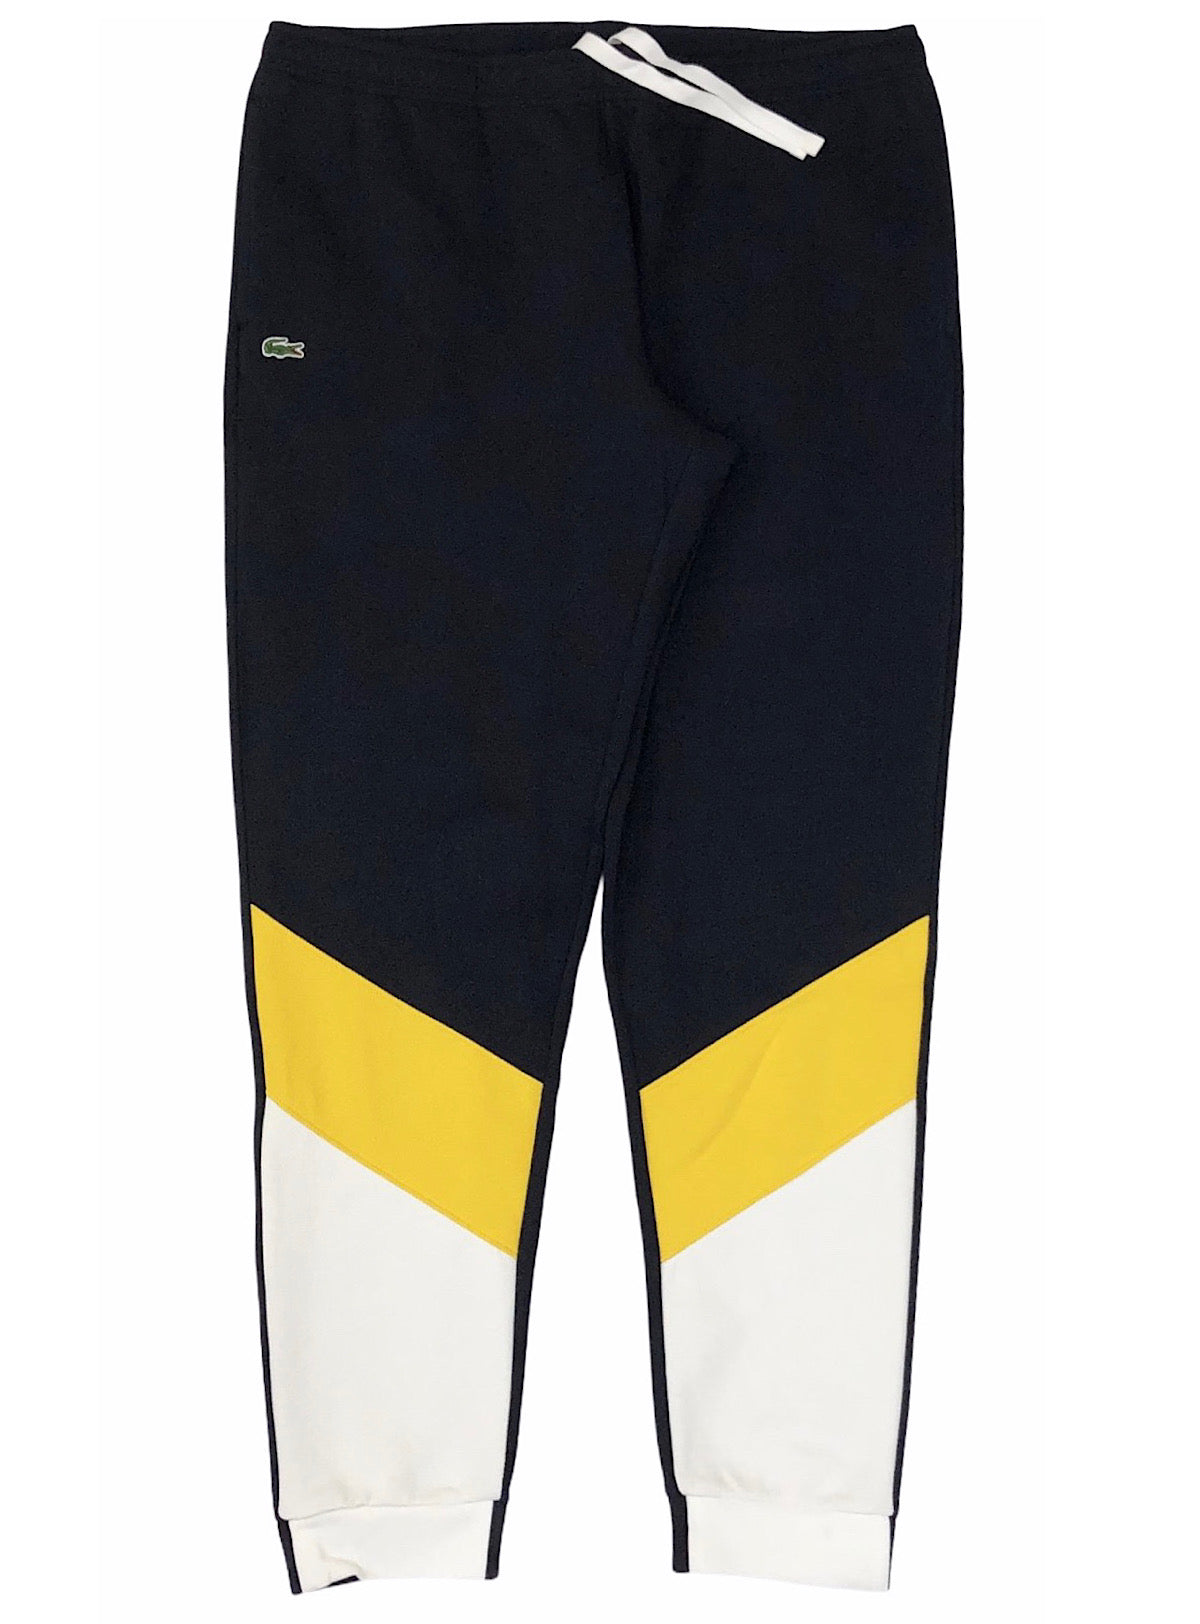 Lacoste Pants - Colorblock - Navy/Yellow/White